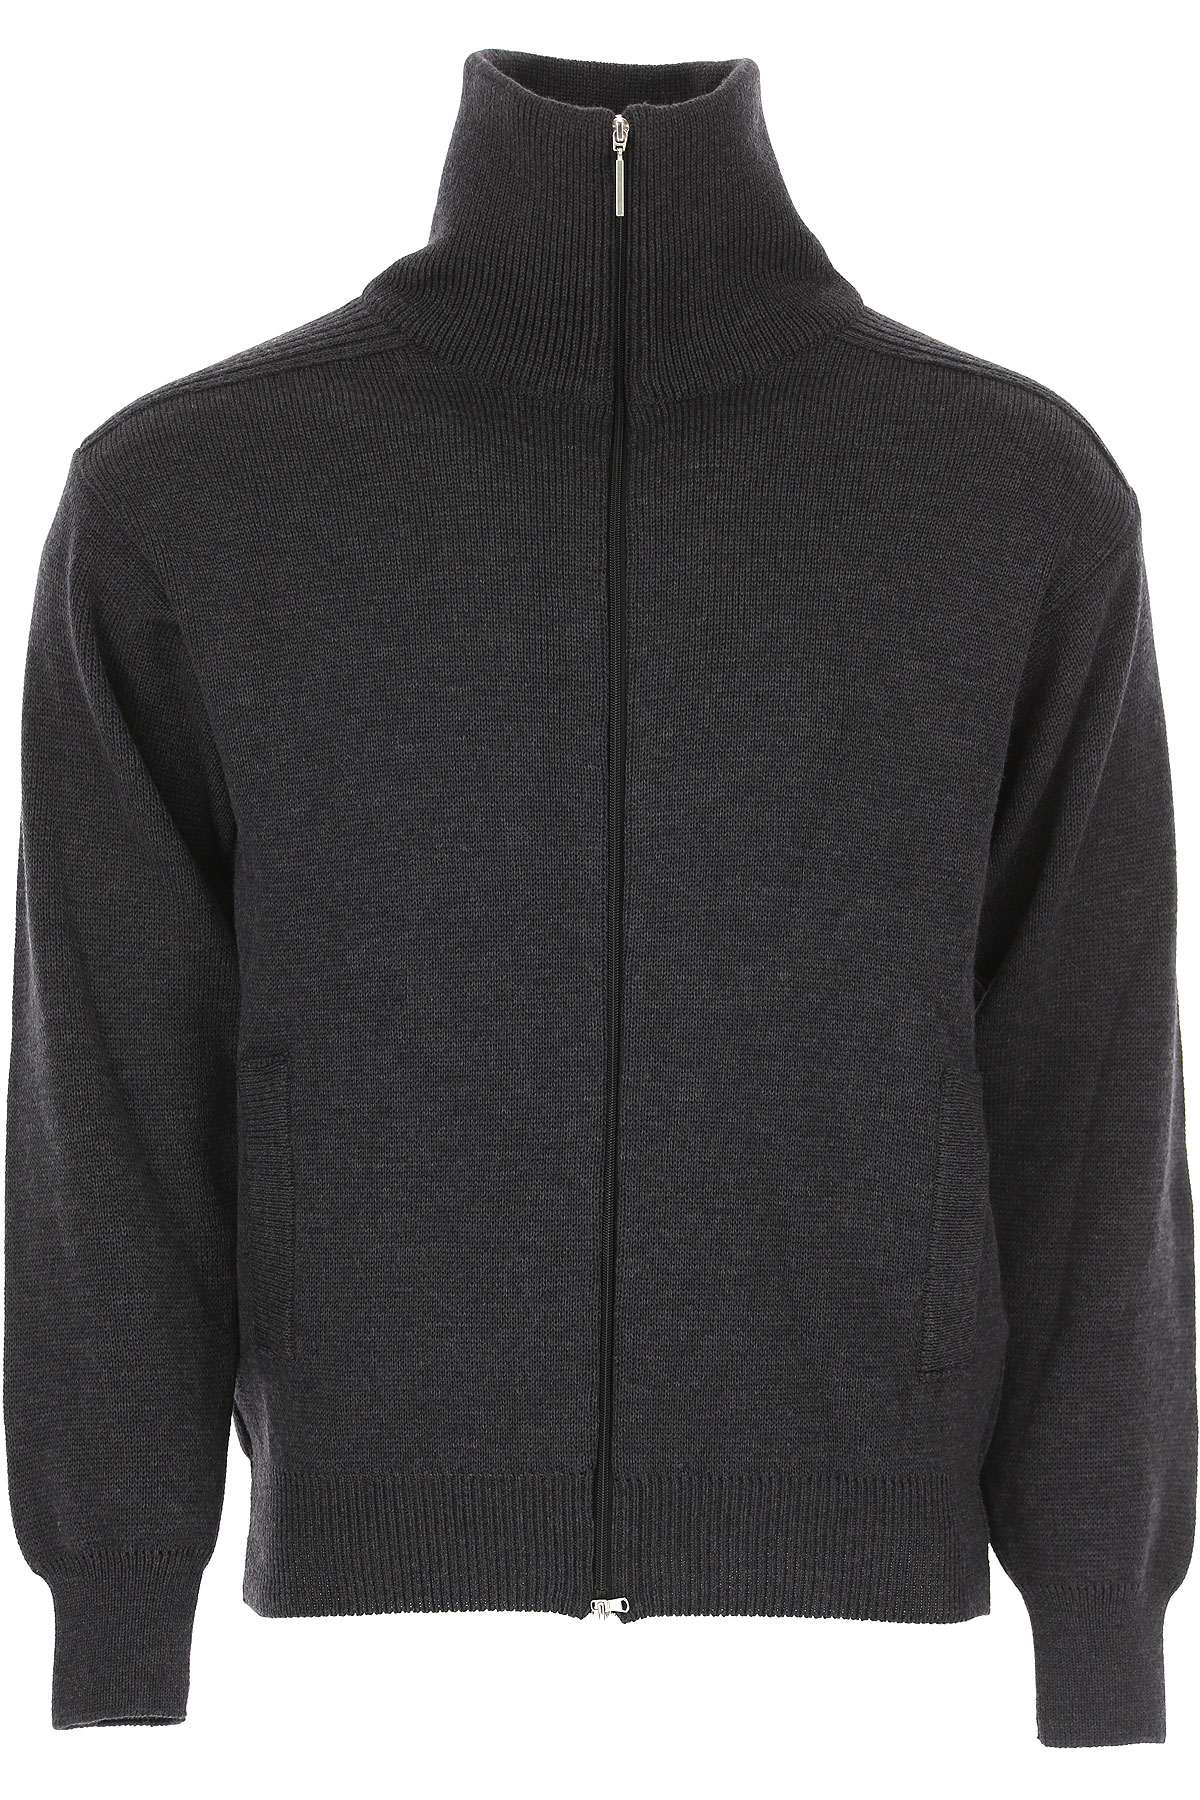 Alberto Vico Sweater for Men Jumper On Sale, Anthracite, Extrafine Merino Wool, 2019, L S XL